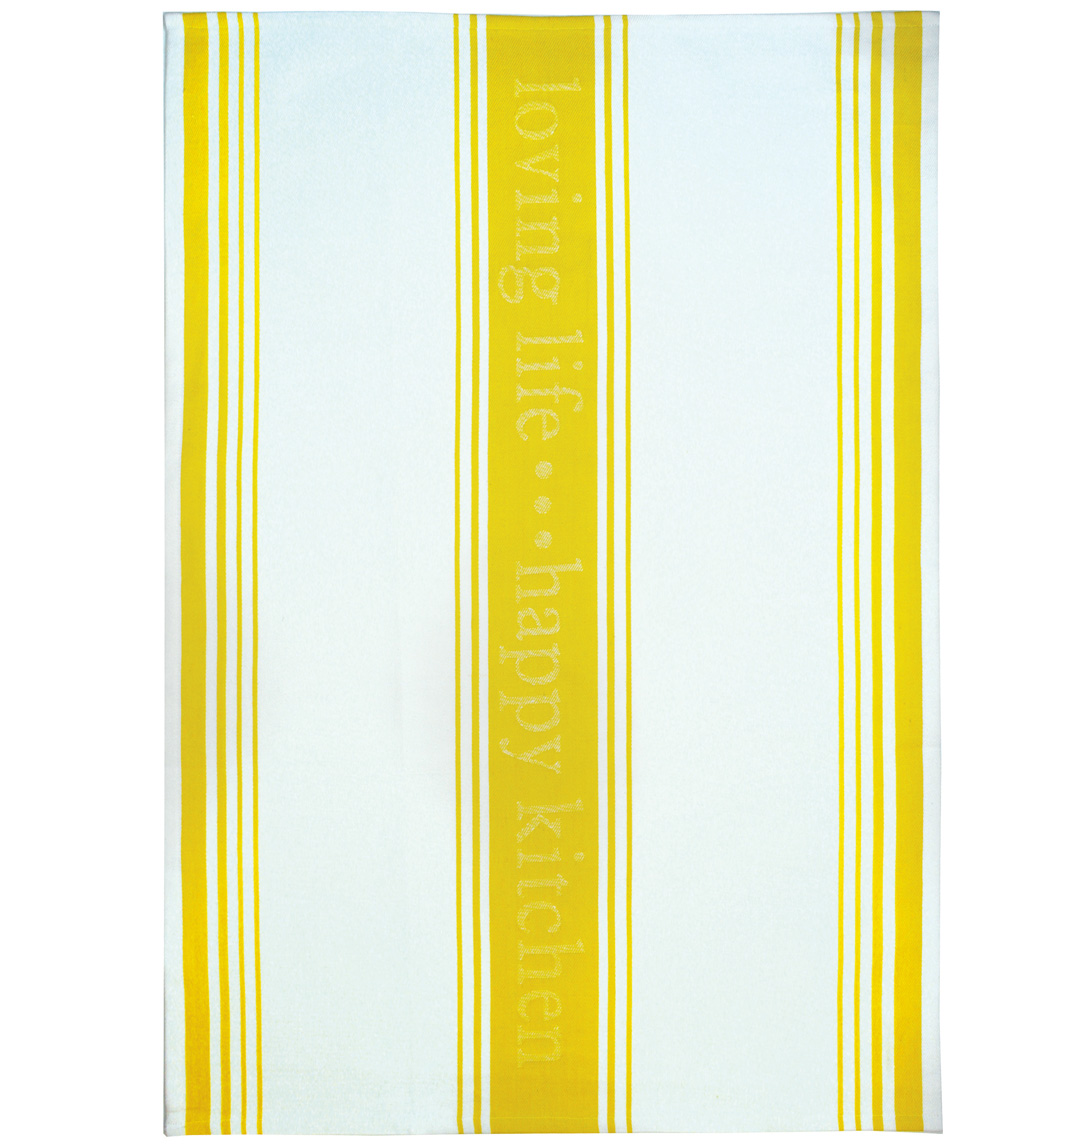 MUkitchen Loving Life 100% Cotton Striped Jacquard Towel 20 by 30-Inches Lemon Drop